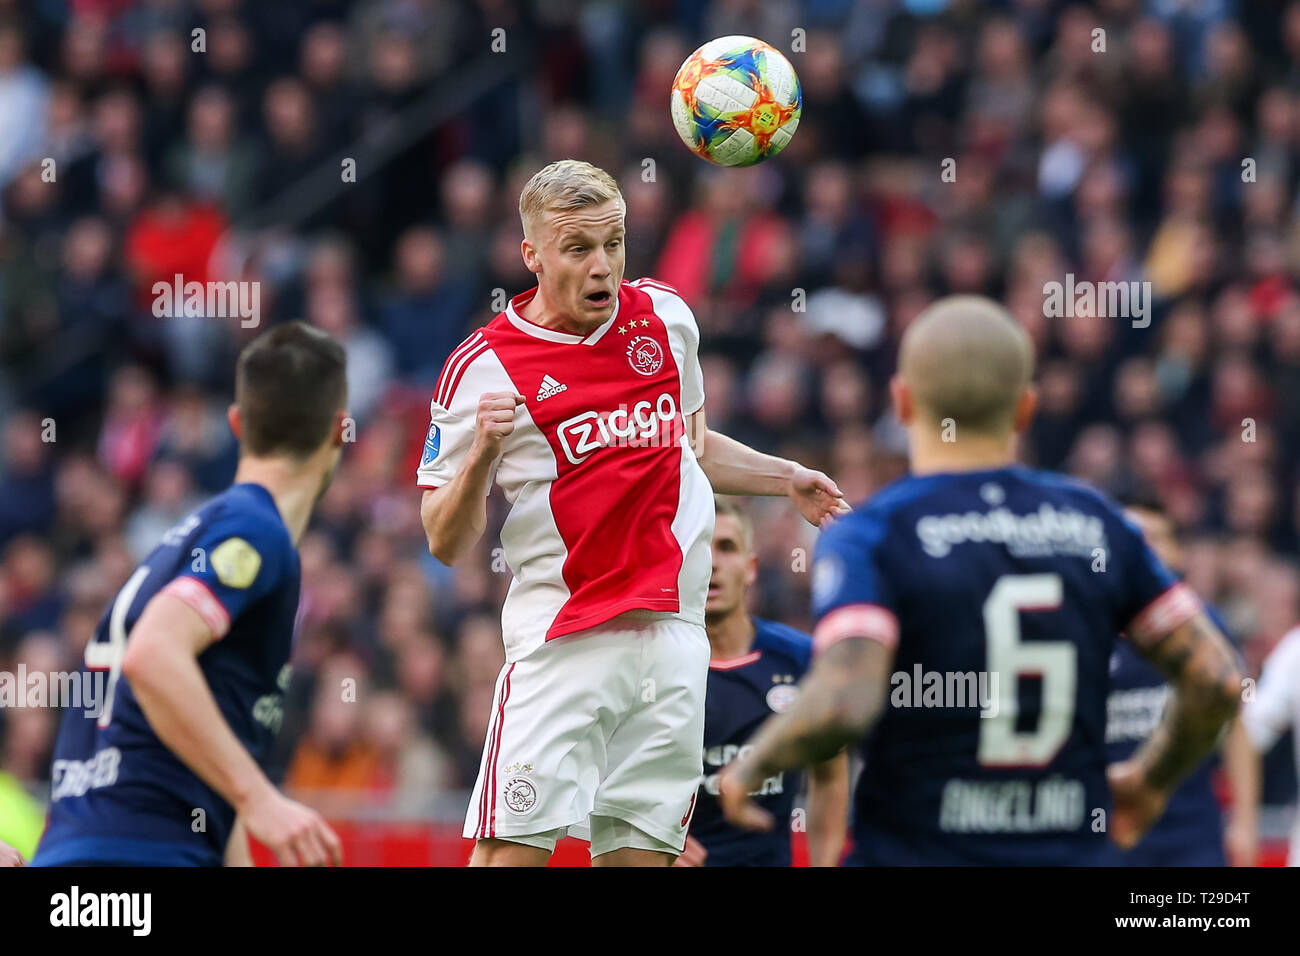 Amsterdam Netherlands 31st Mar 2019 Johan Cruyffarena Football Season 2018 2019 Dutch Eredivisie Ajax Psv Final Result 3 1 Credit Pro Shots Alamy Live News Stock Photo Alamy